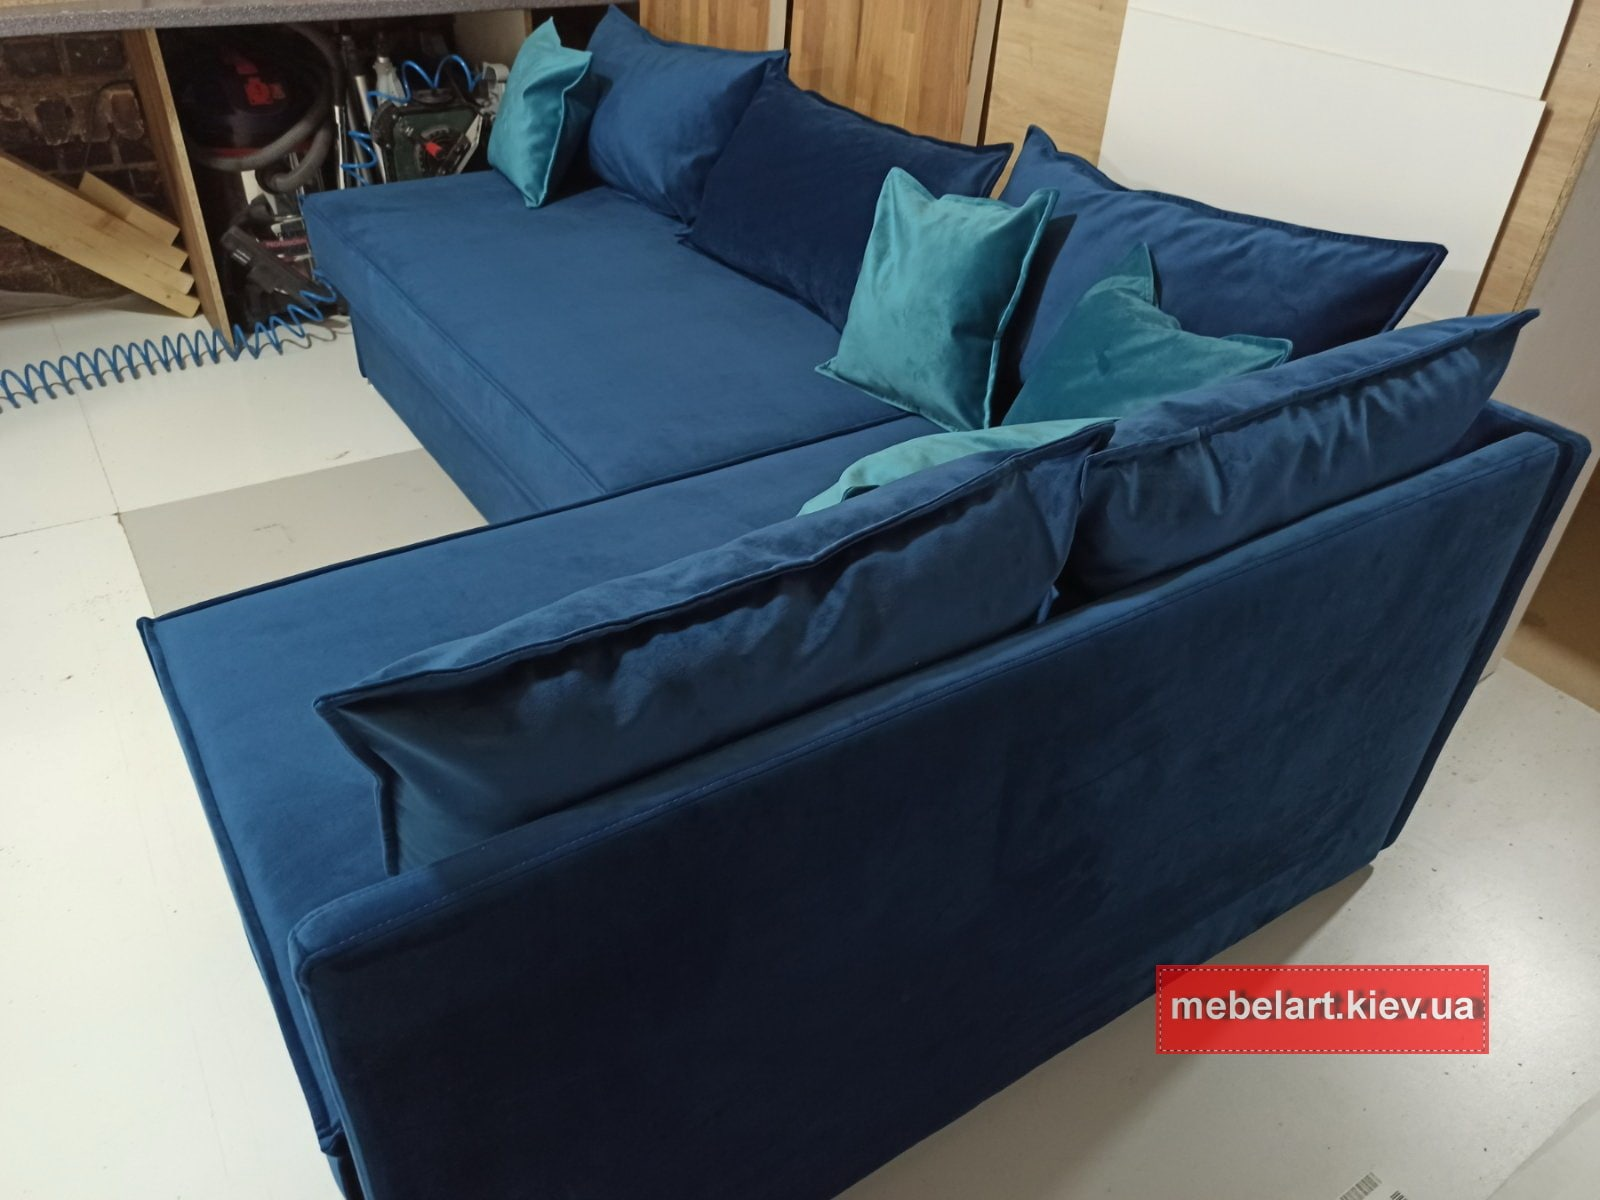 upholstered furniture with a berth